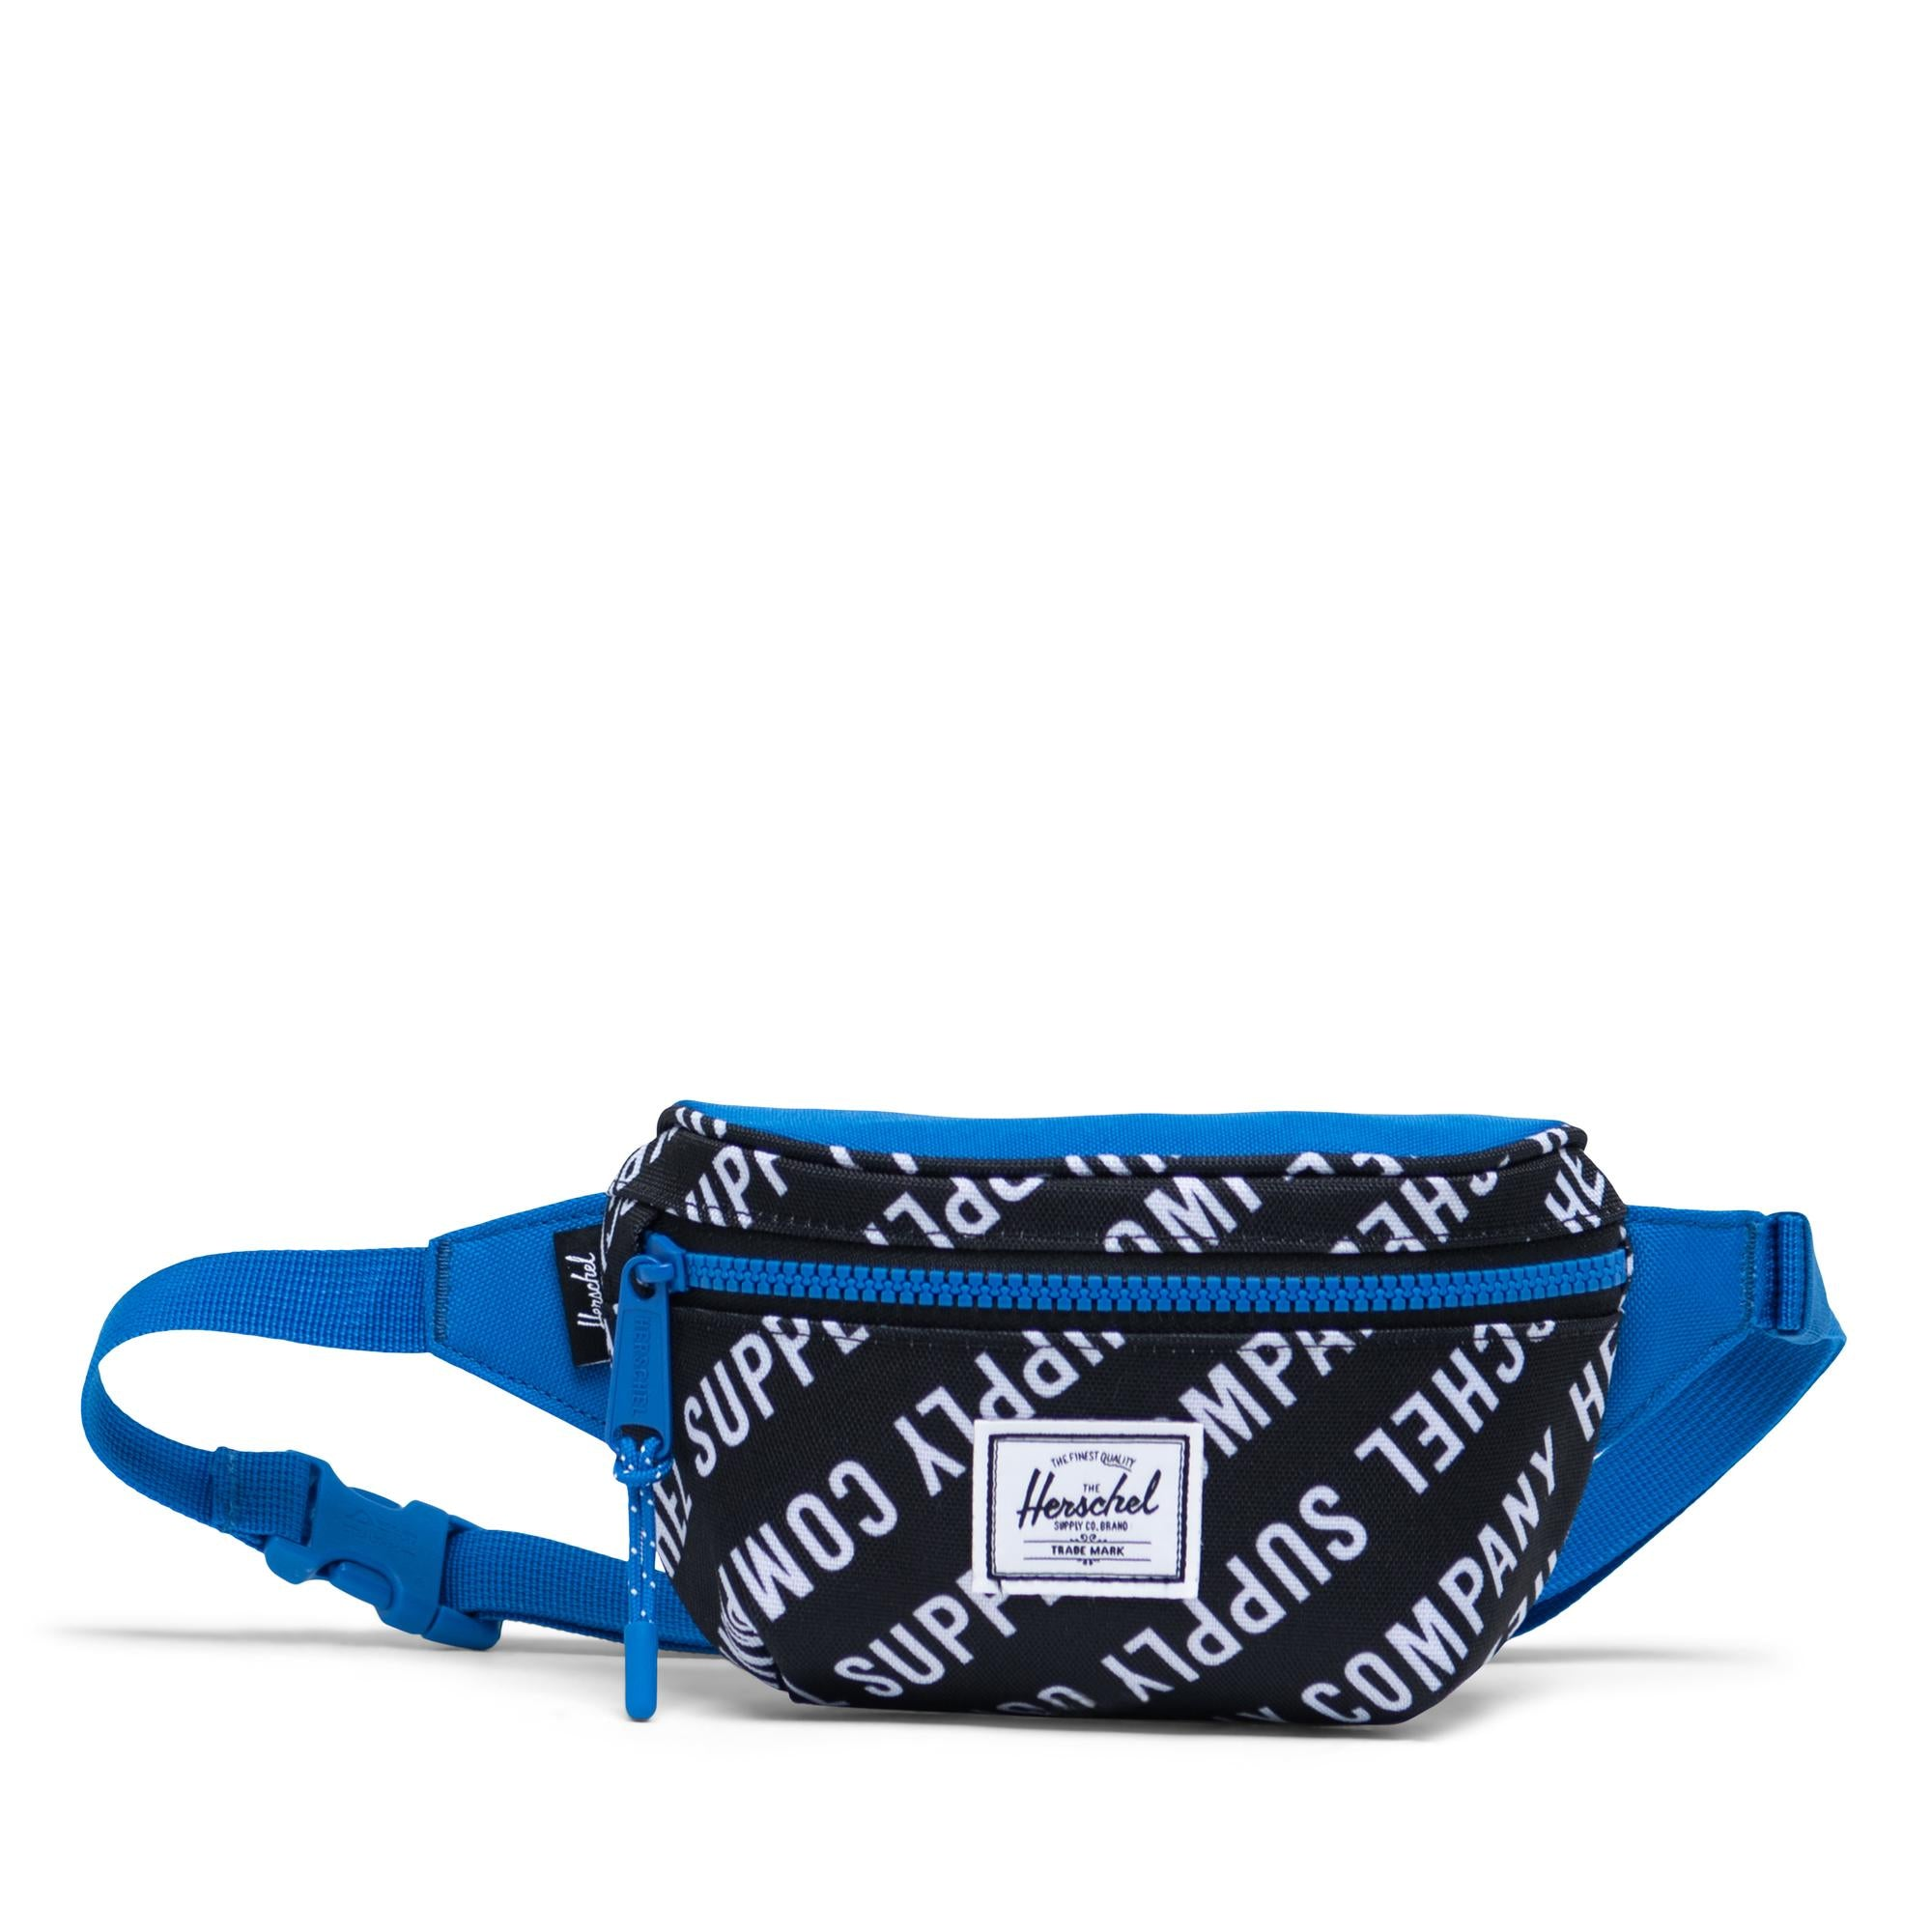 Herschel Supply Twelve Roll Call Black/White/Lapis Blue Hip Pack